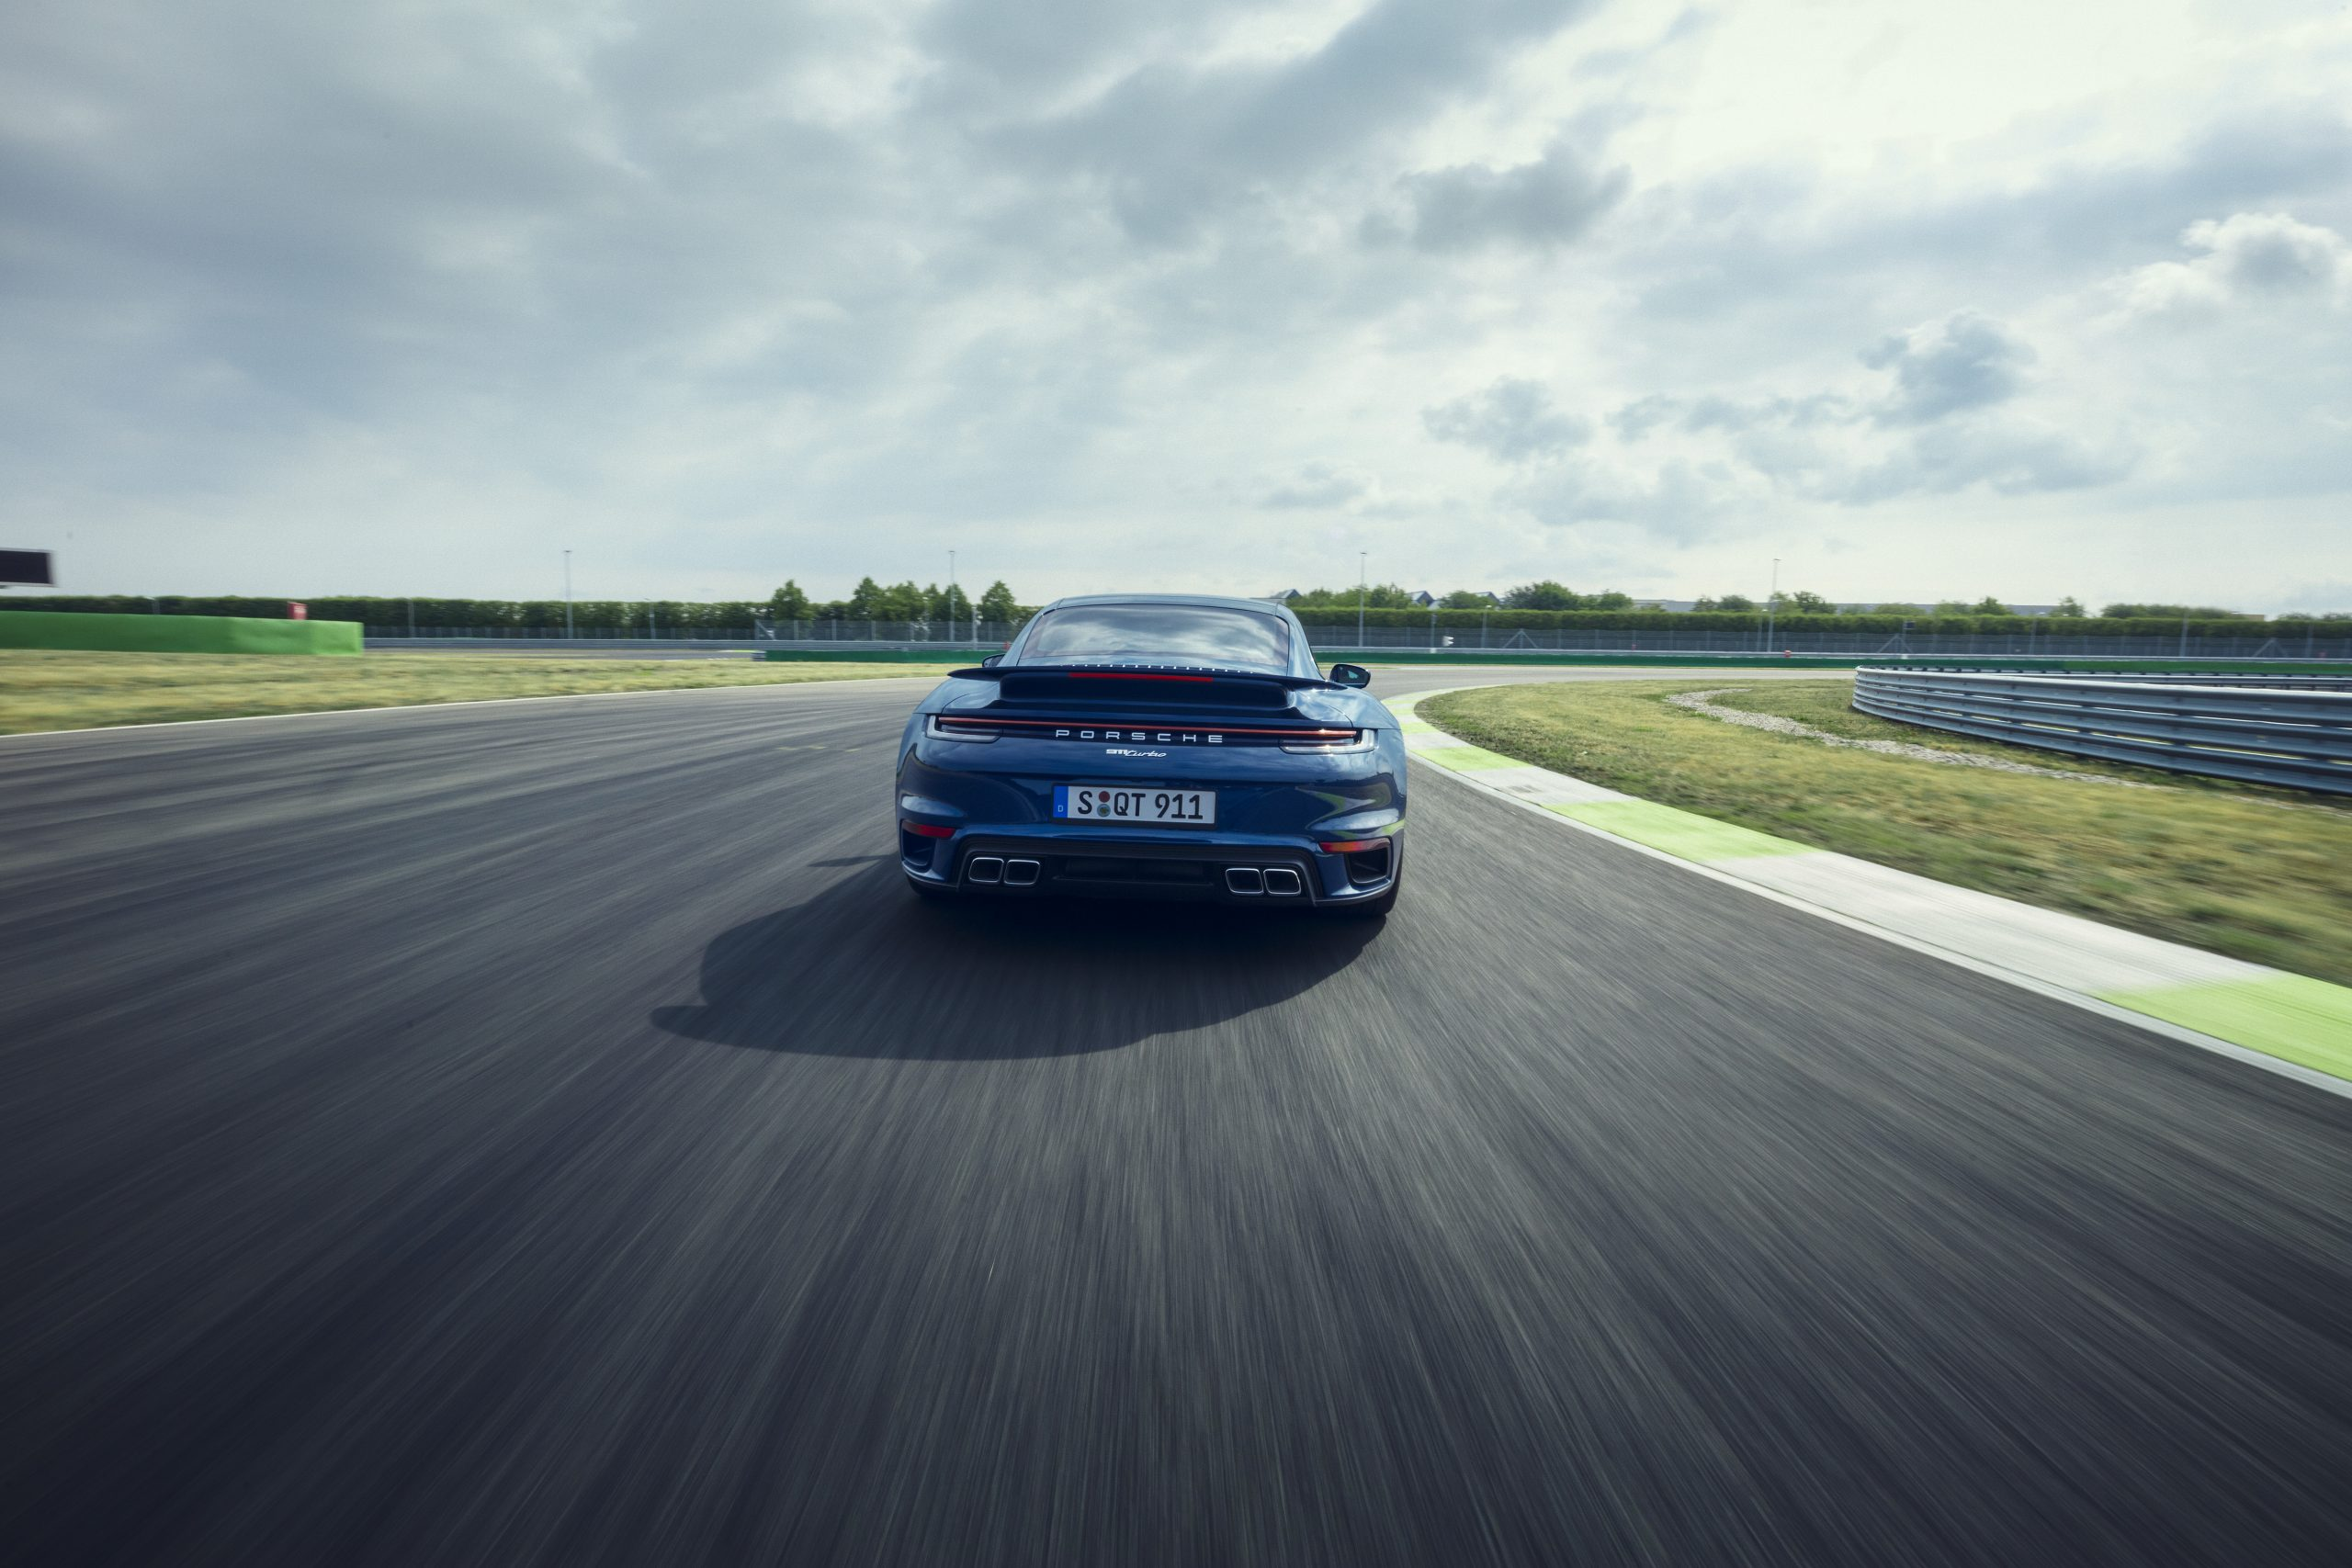 2021 Porsche 911 Turbo on track action rear